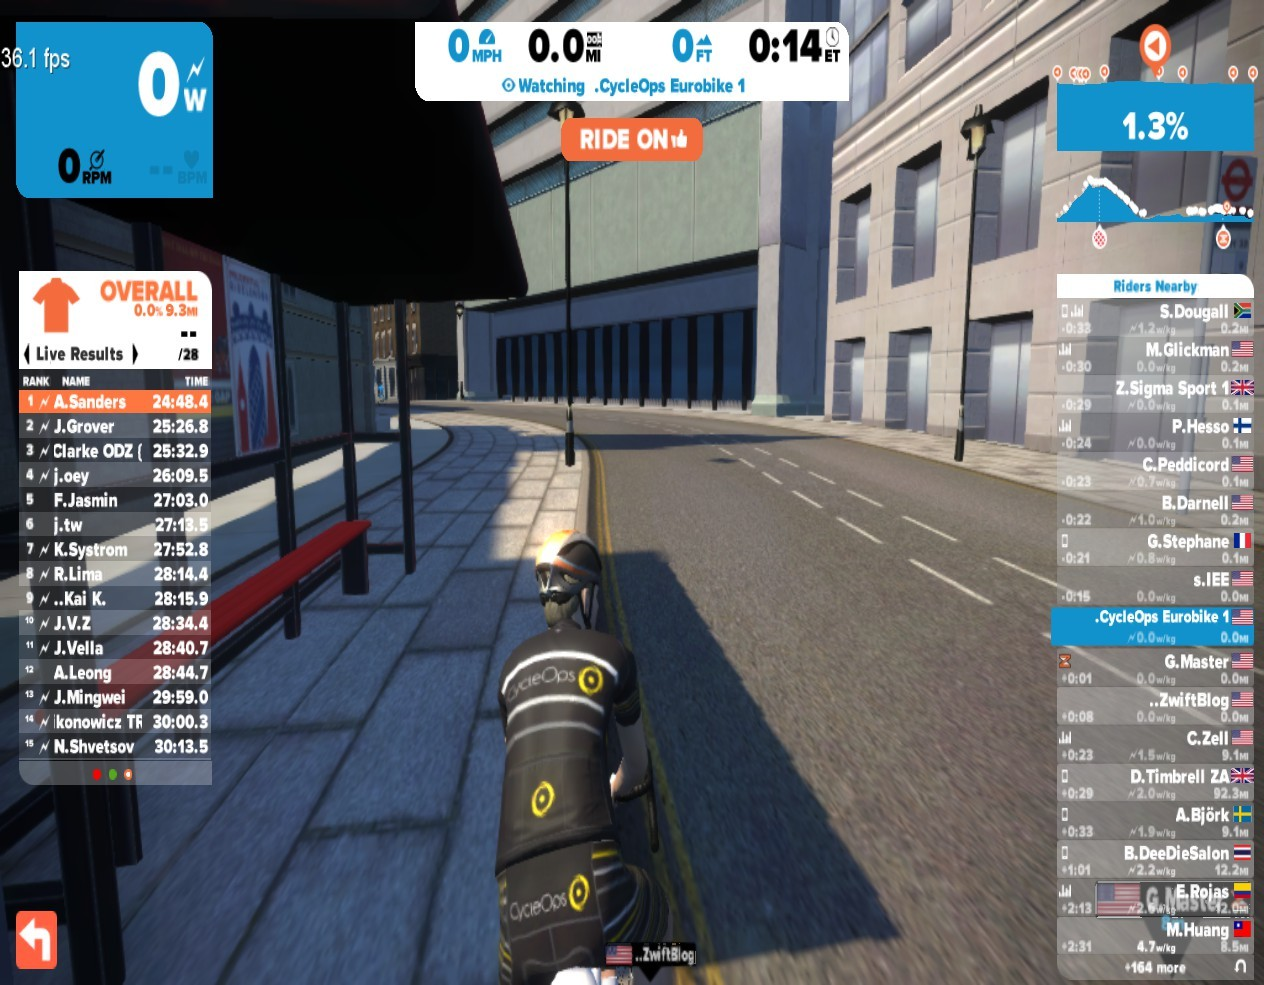 How to show your frames per second (FPS) in Zwift   Zwift